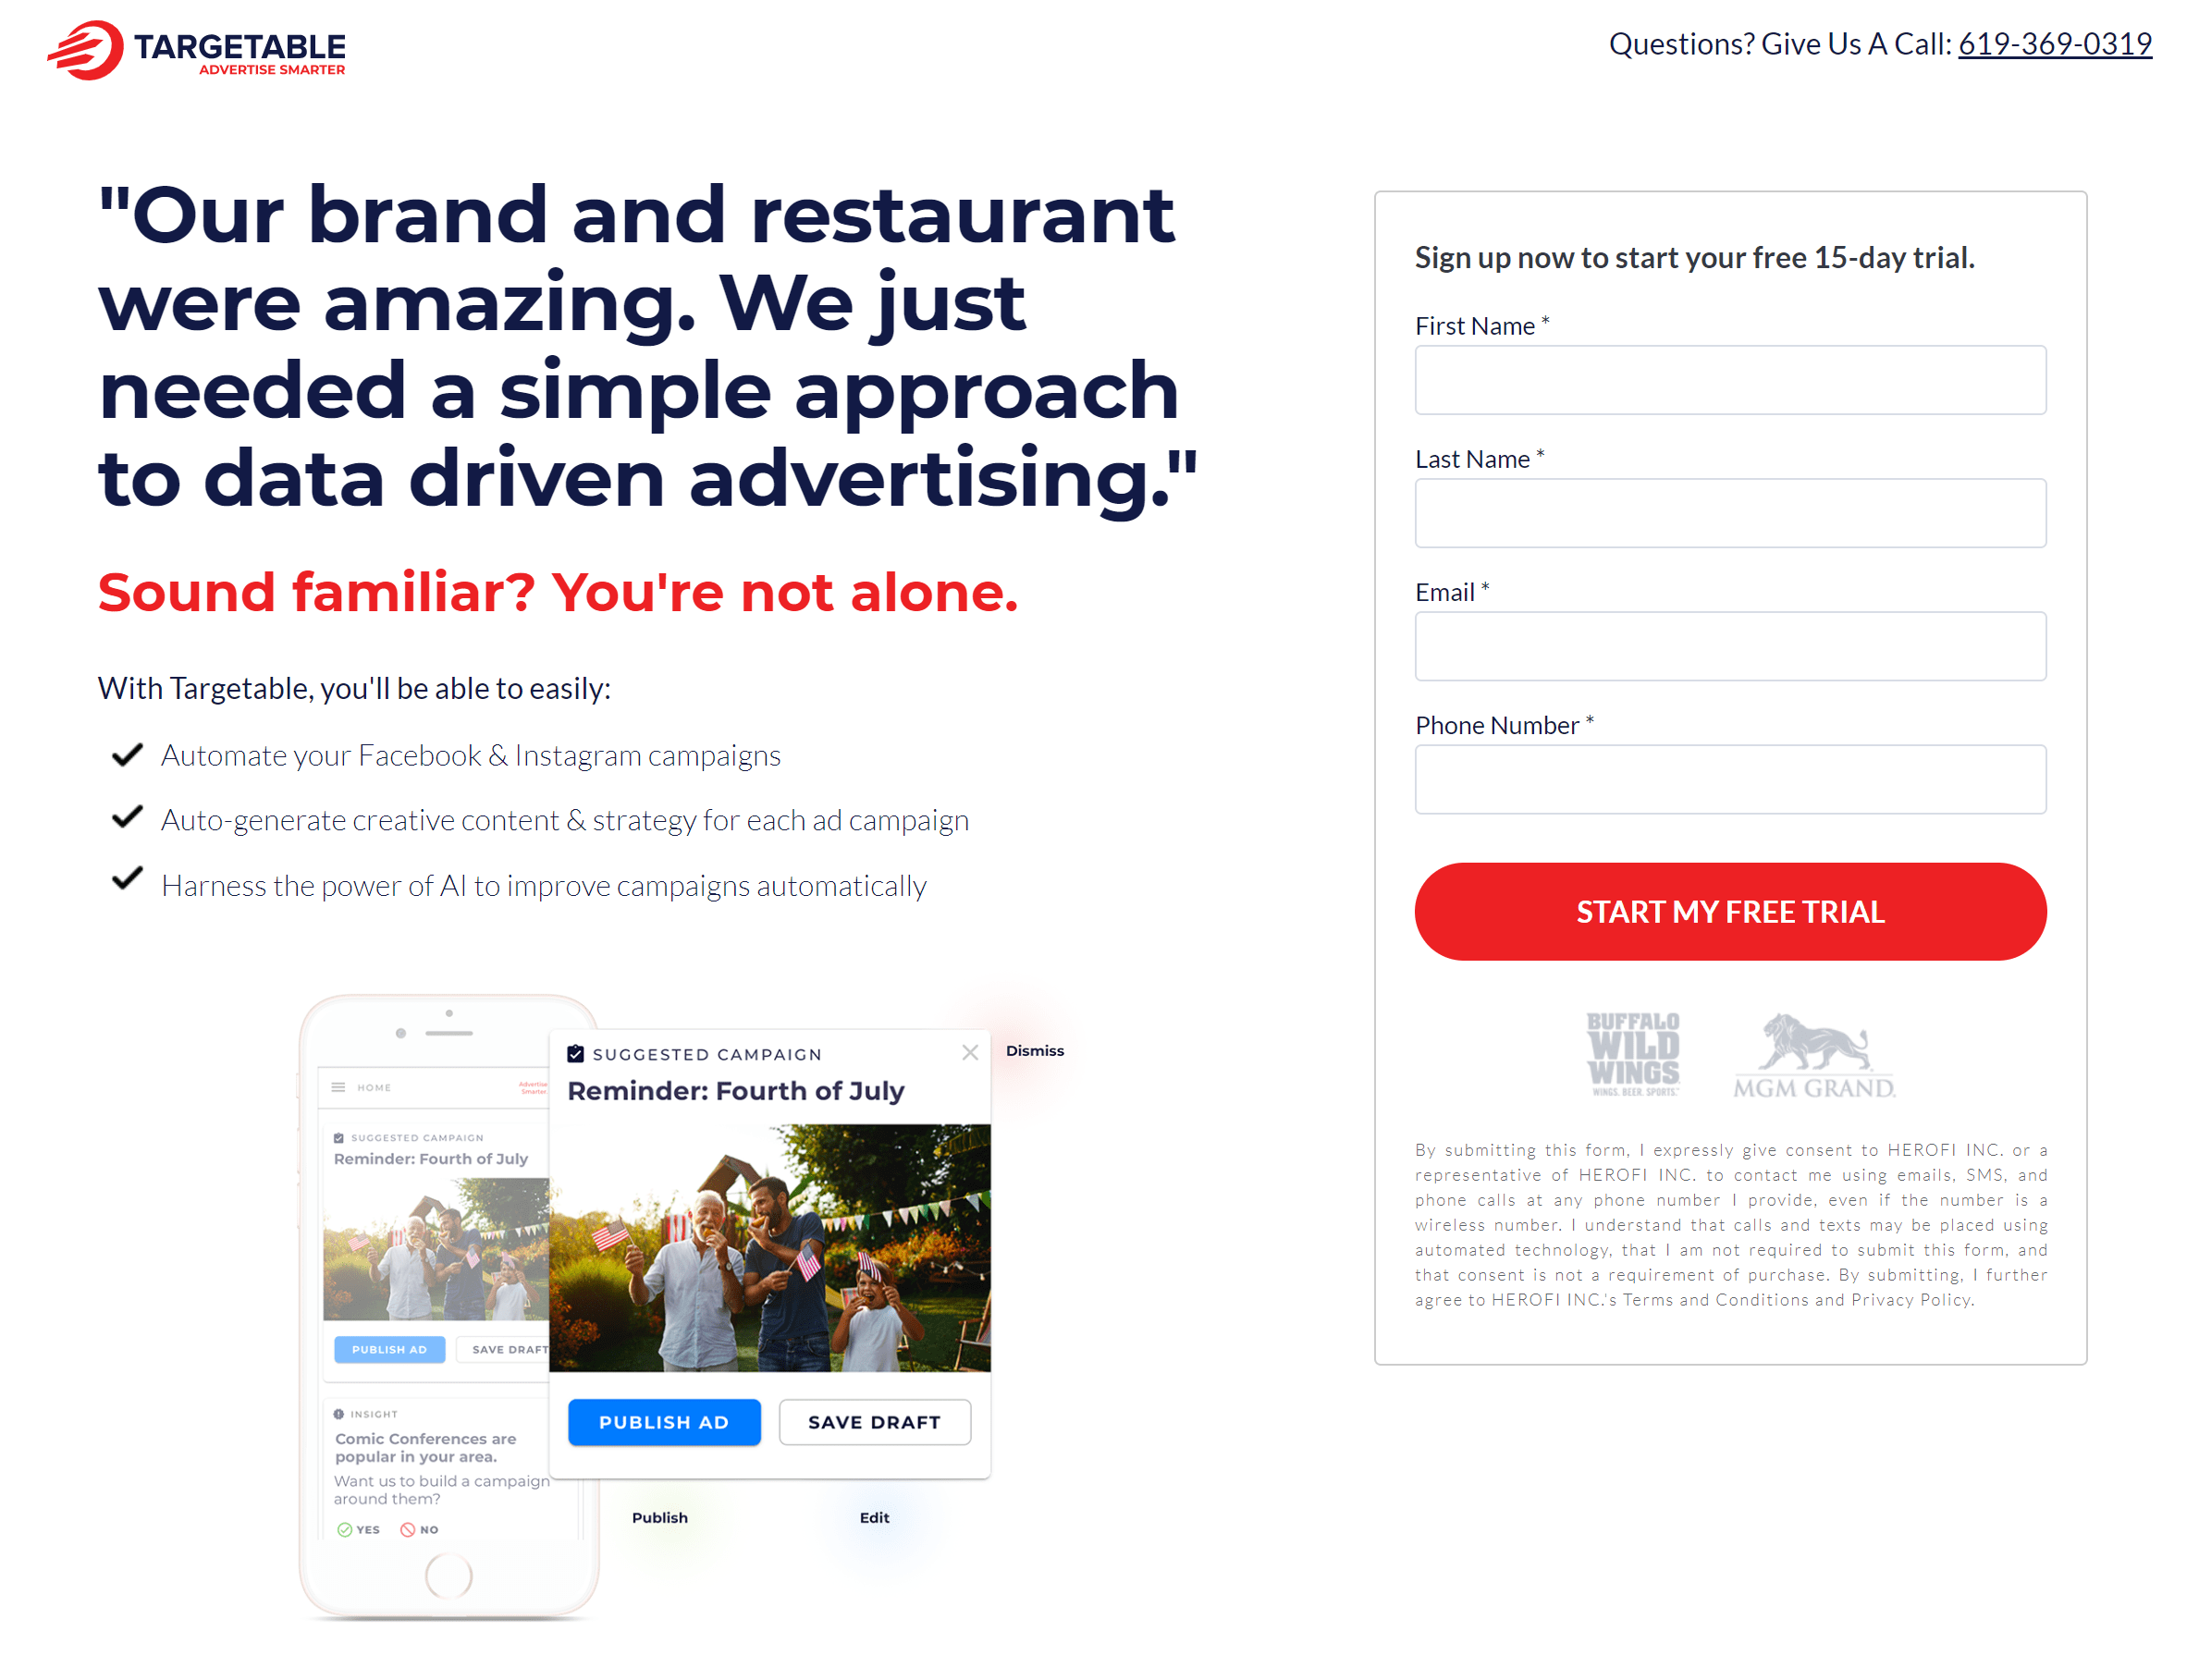 Targetable sign up pages with testimonials